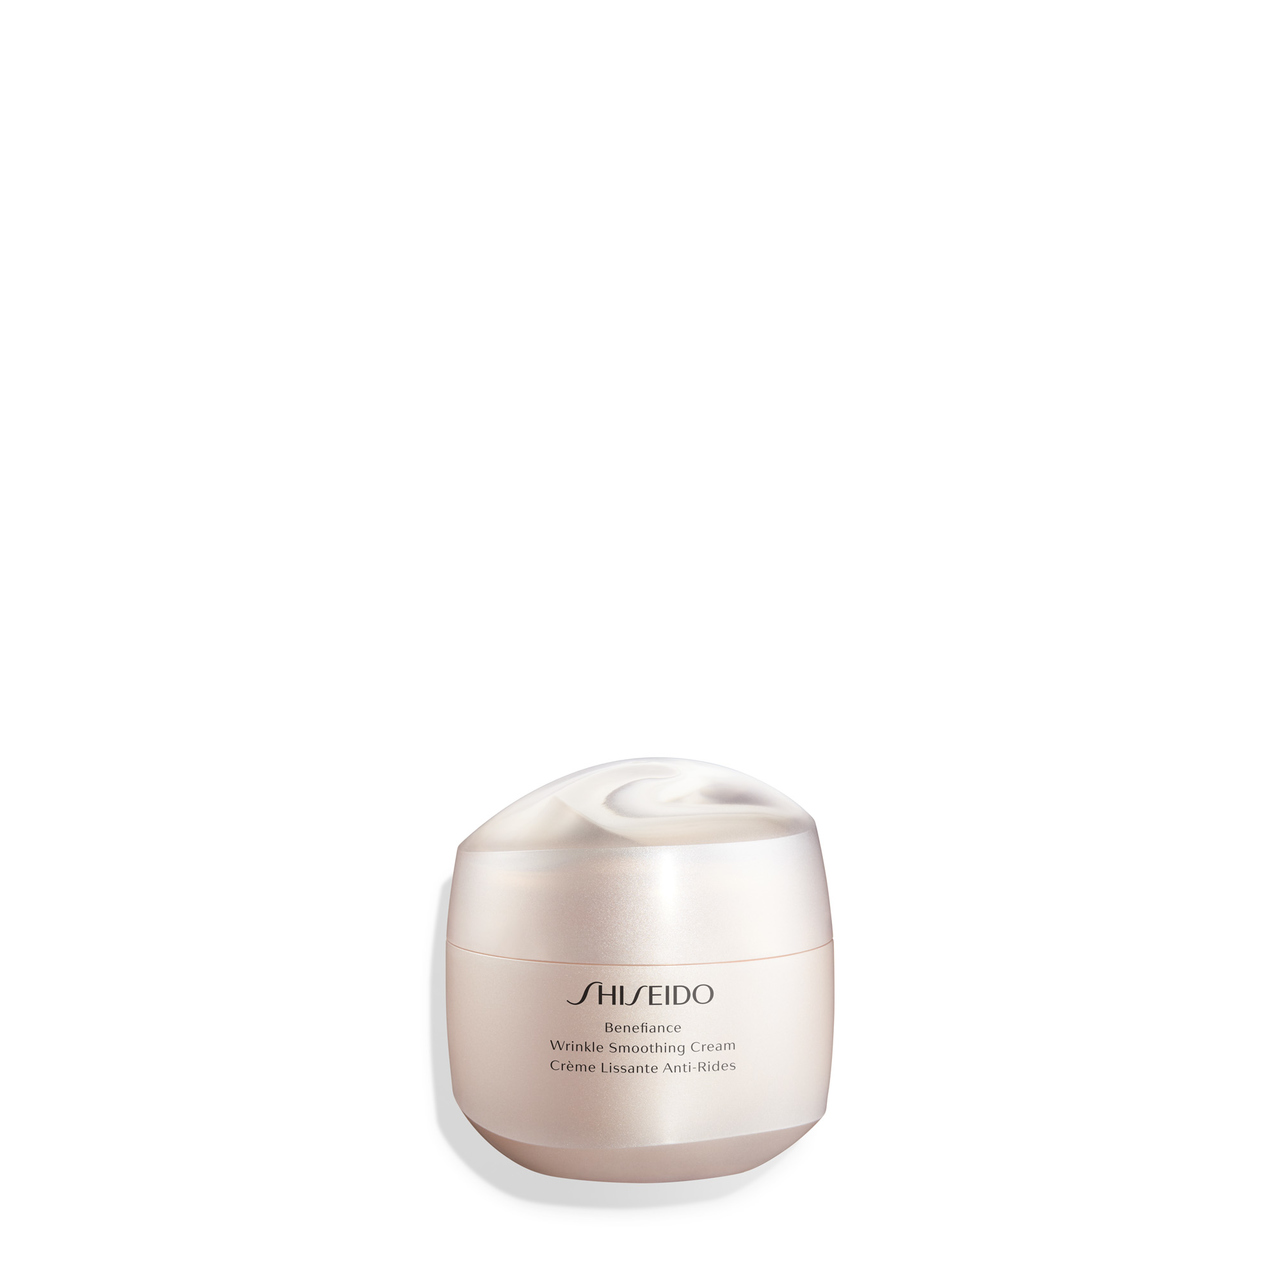 Benefiance Shiseido WRINKLE SMOOTHING CREAM 75 ml